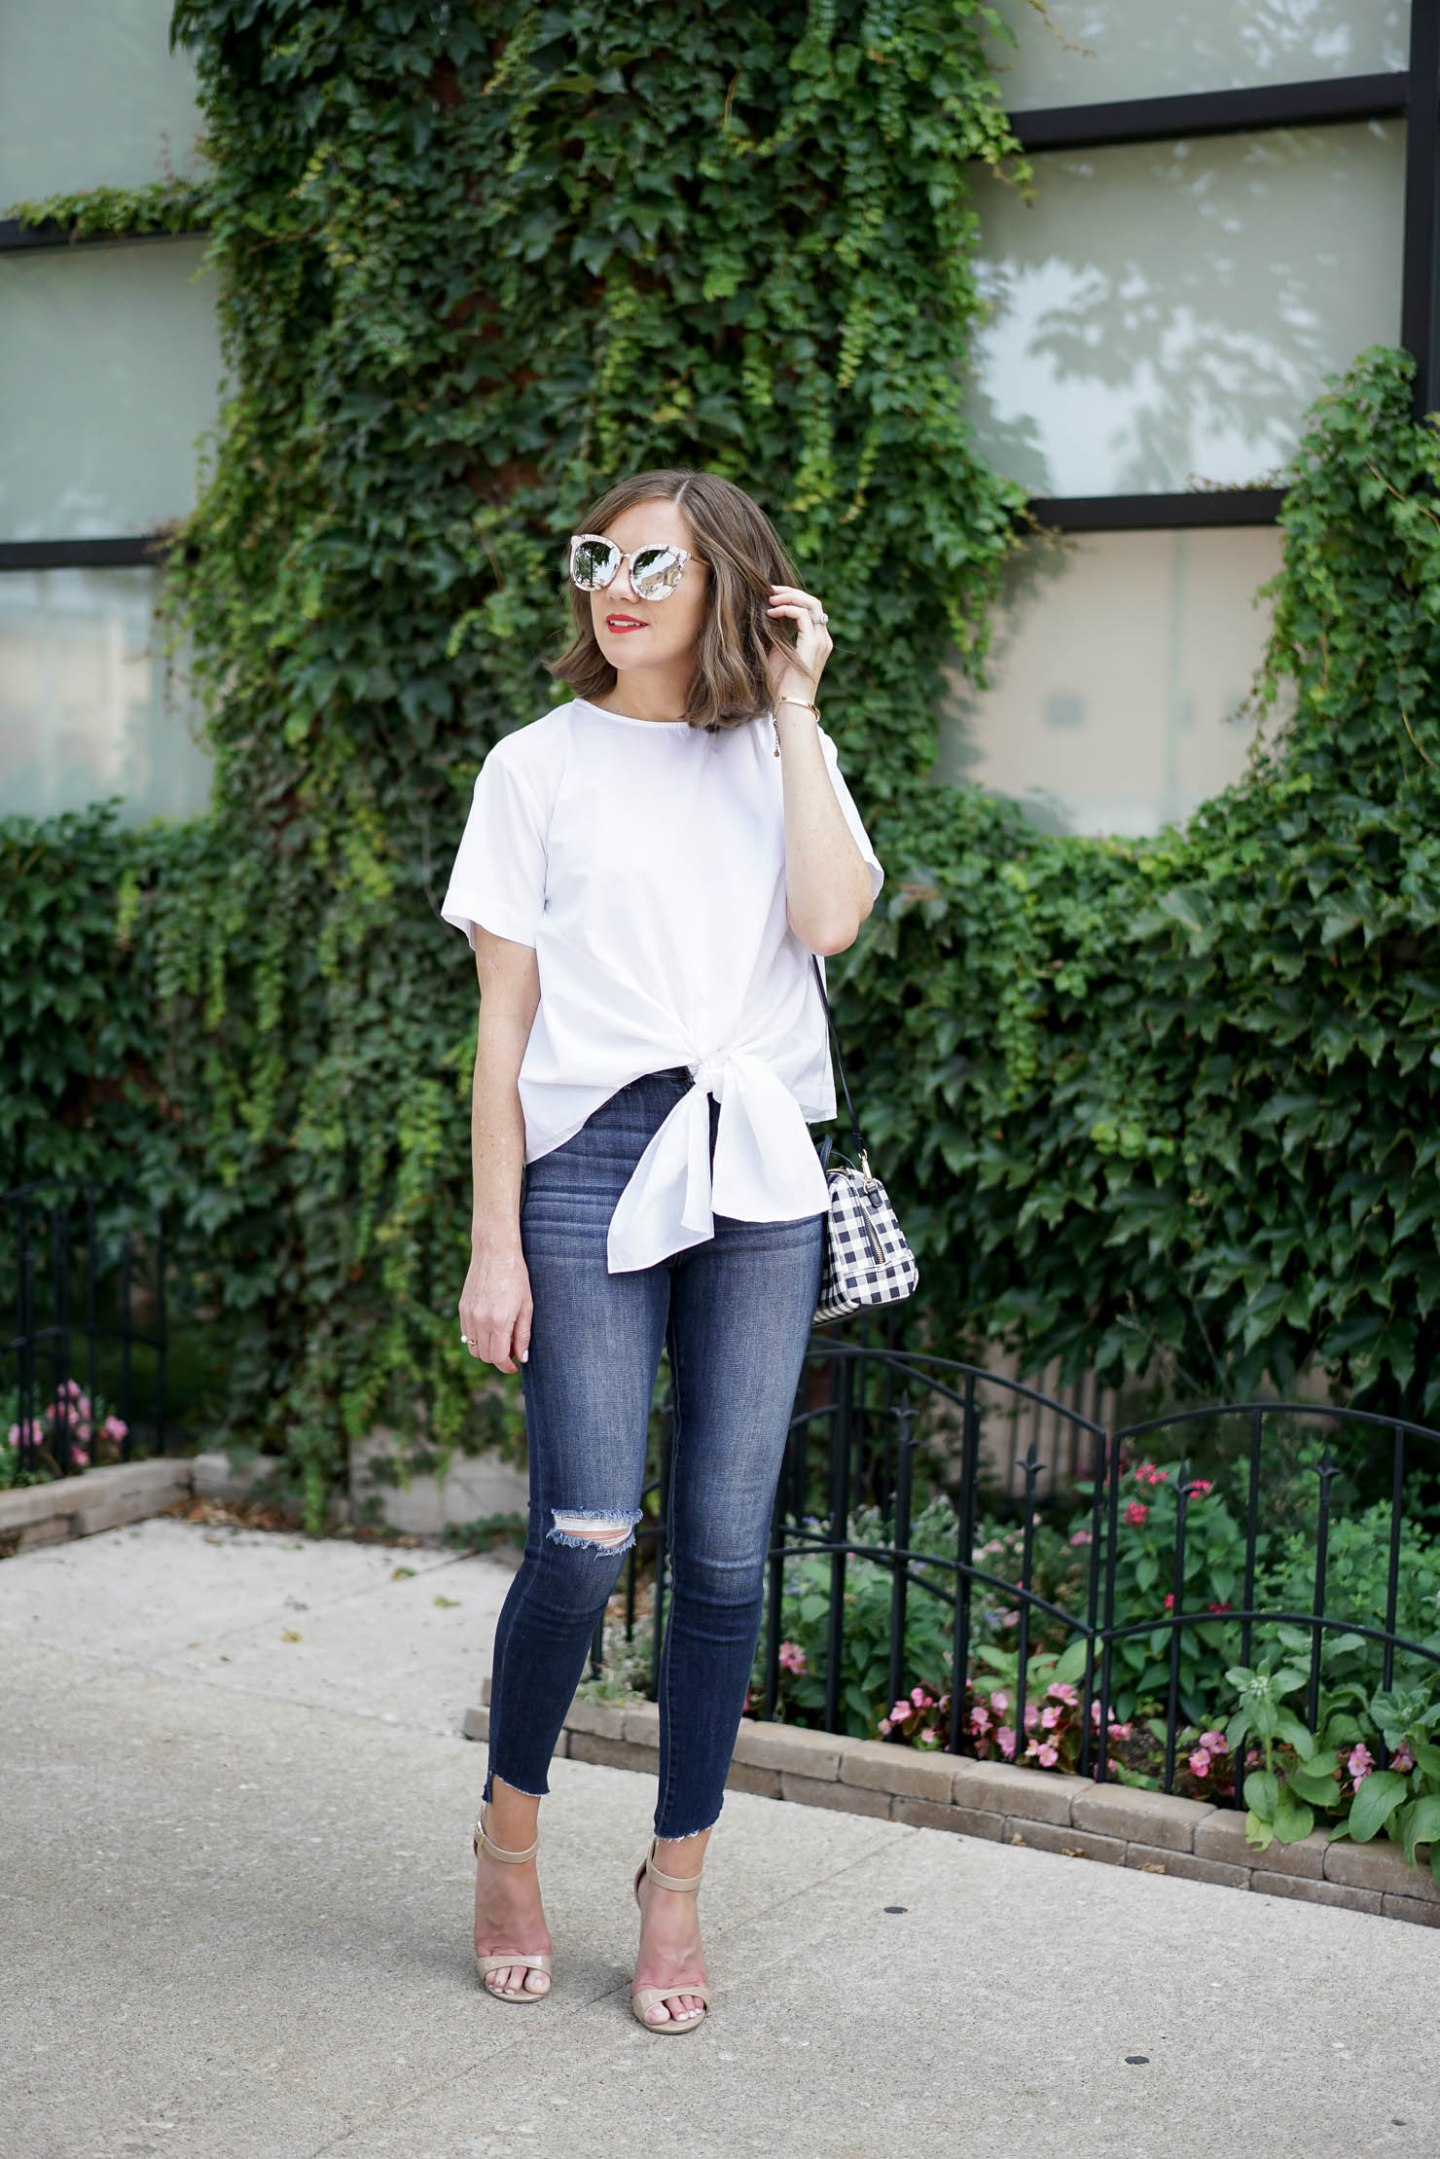 how to transition your favorite summer top for fall, the best affordable suede moto jacket, blanknyc, the tie front top, fall trends 2017, classic transitional piece you need for fall